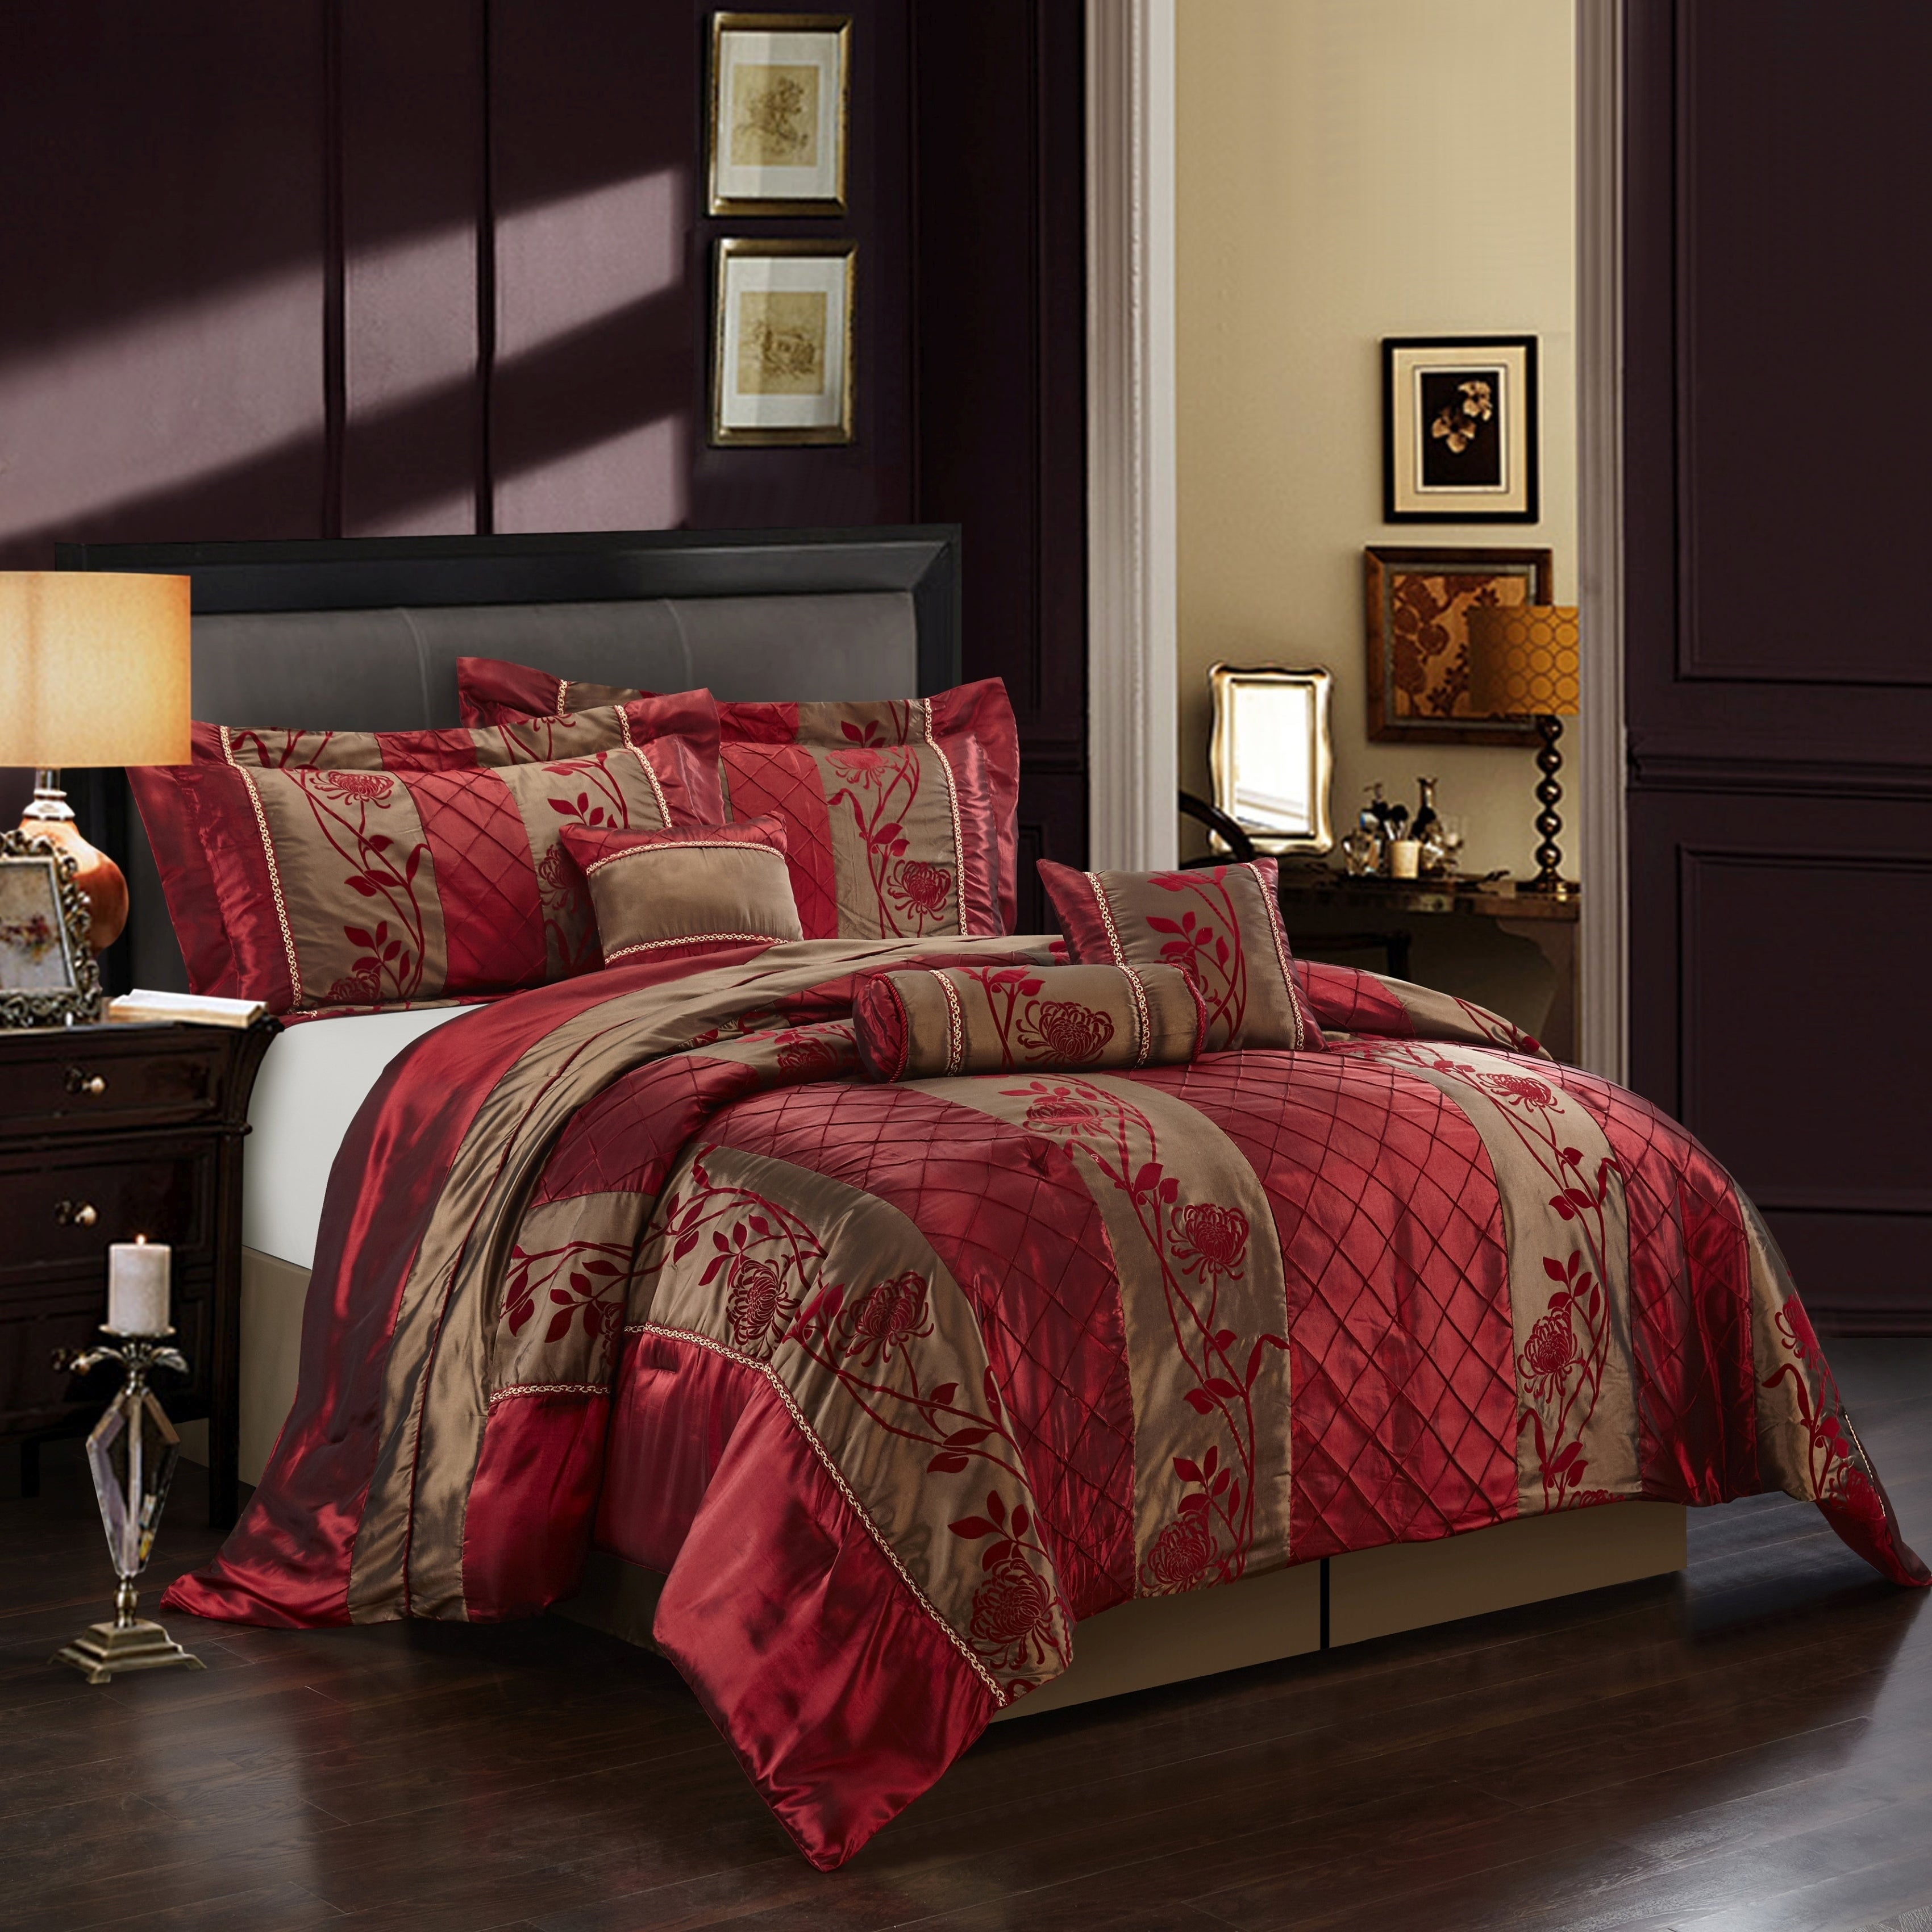 Grand Avenue Pepper 7 Piece Red Gold Comforter Set Overstock 11776367